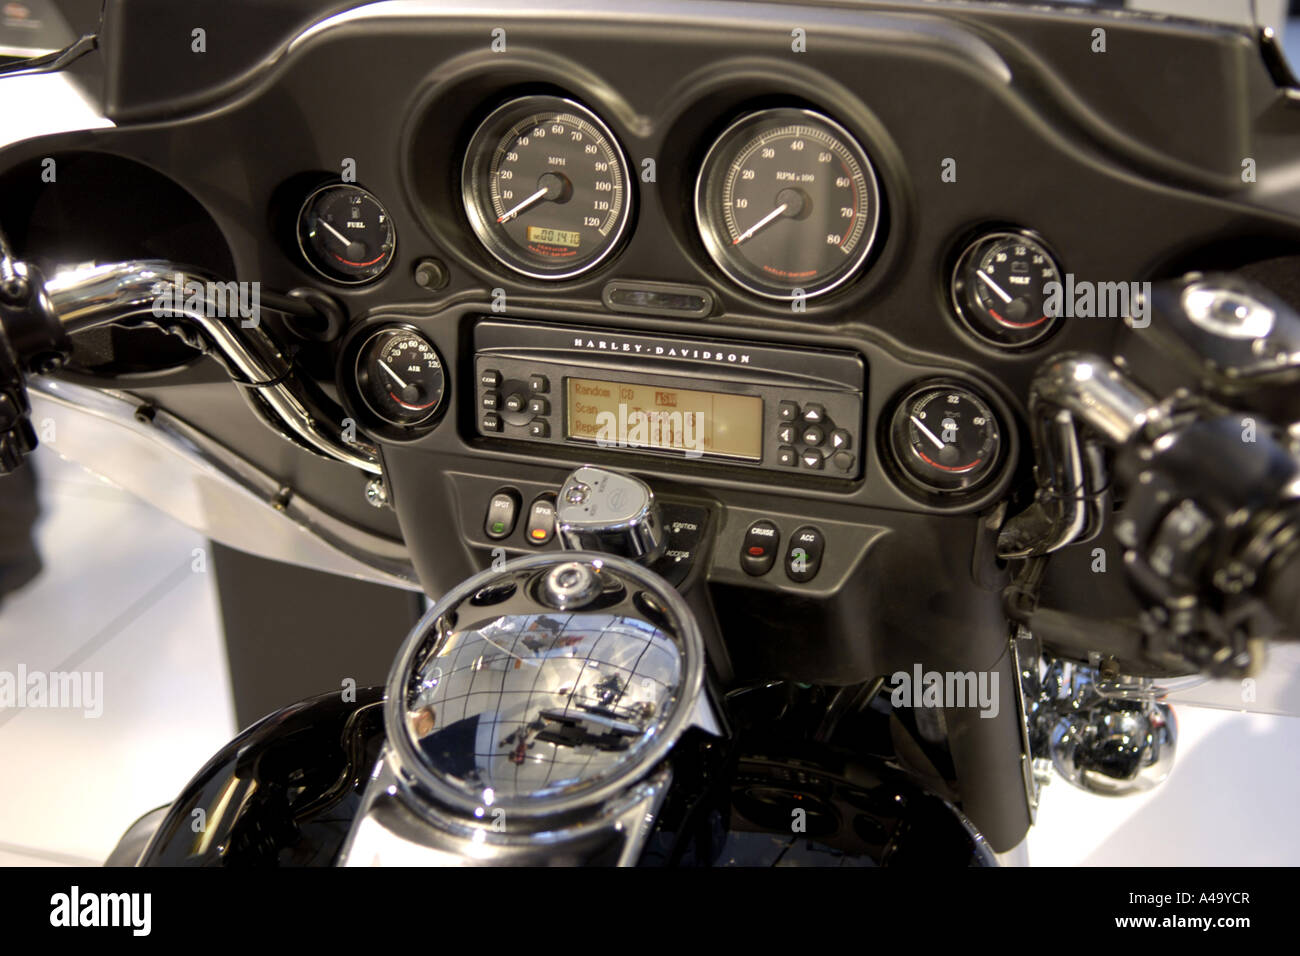 A Harley Davidson Cockpit With A Dvd Player Stock Photo 10982086